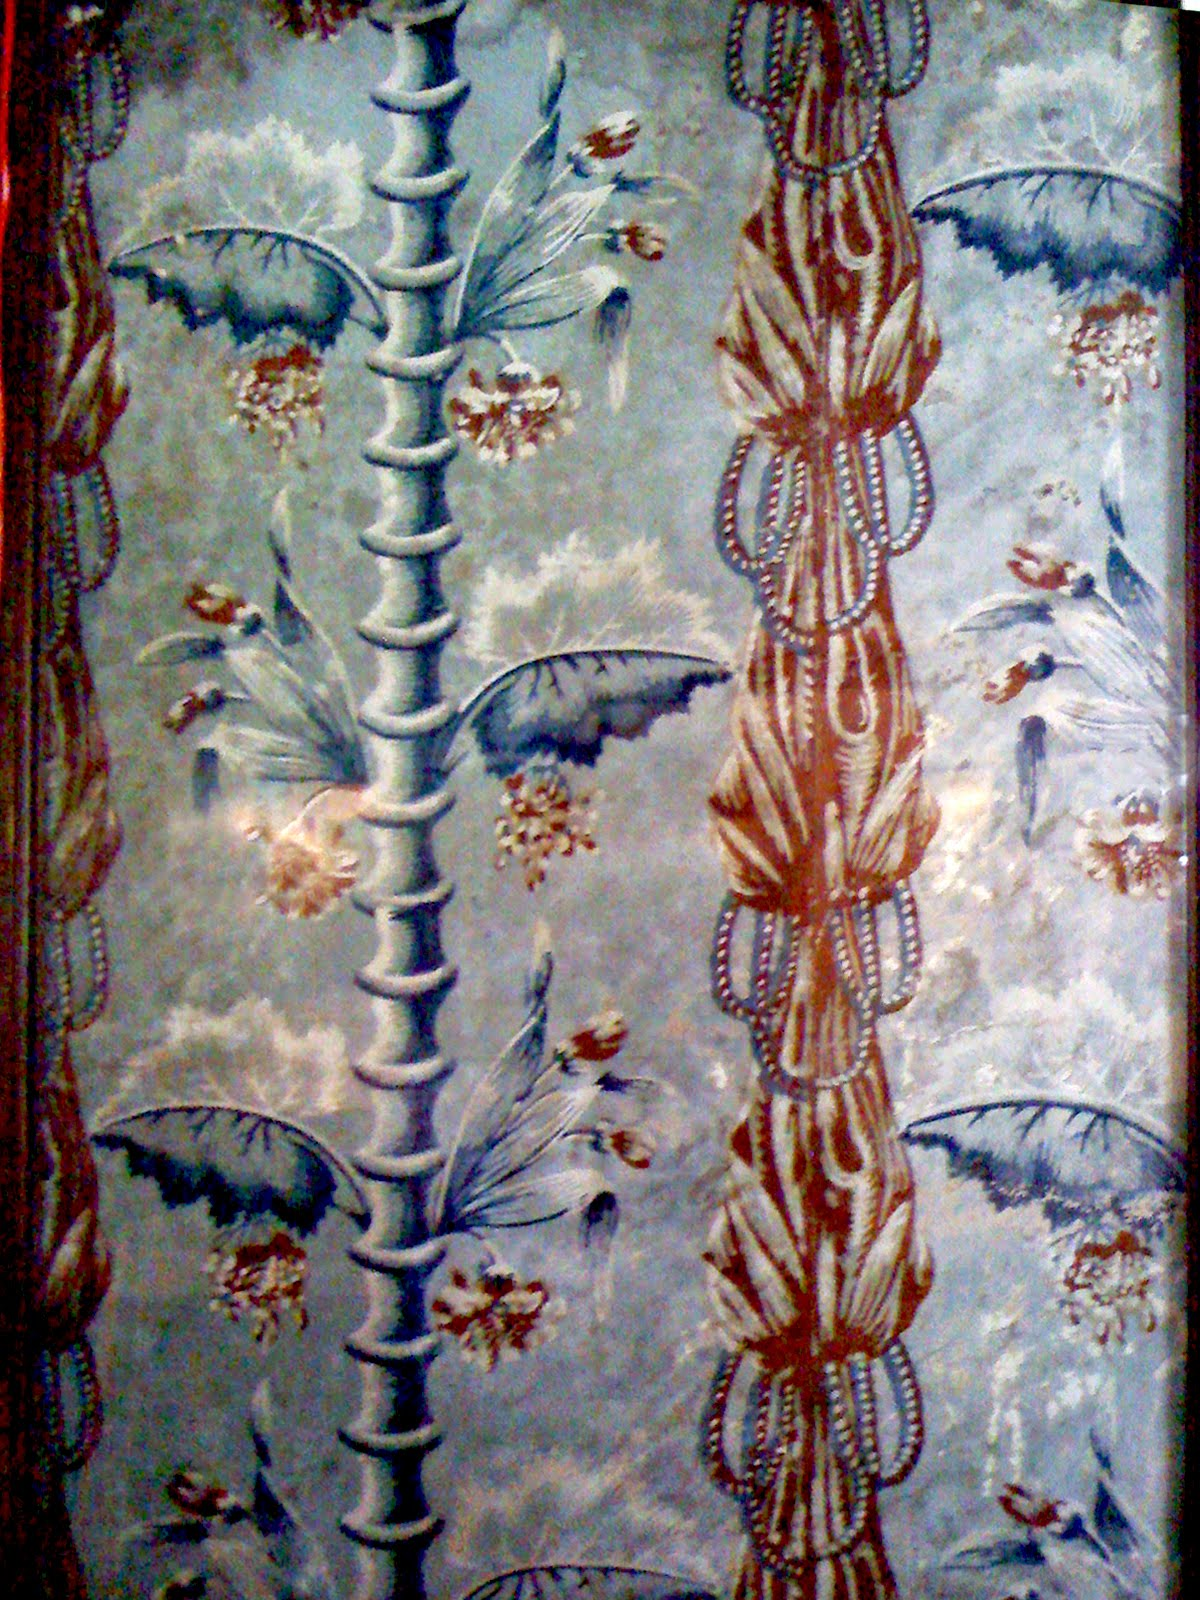 this wonderful French wallpaper was found in the 17th century